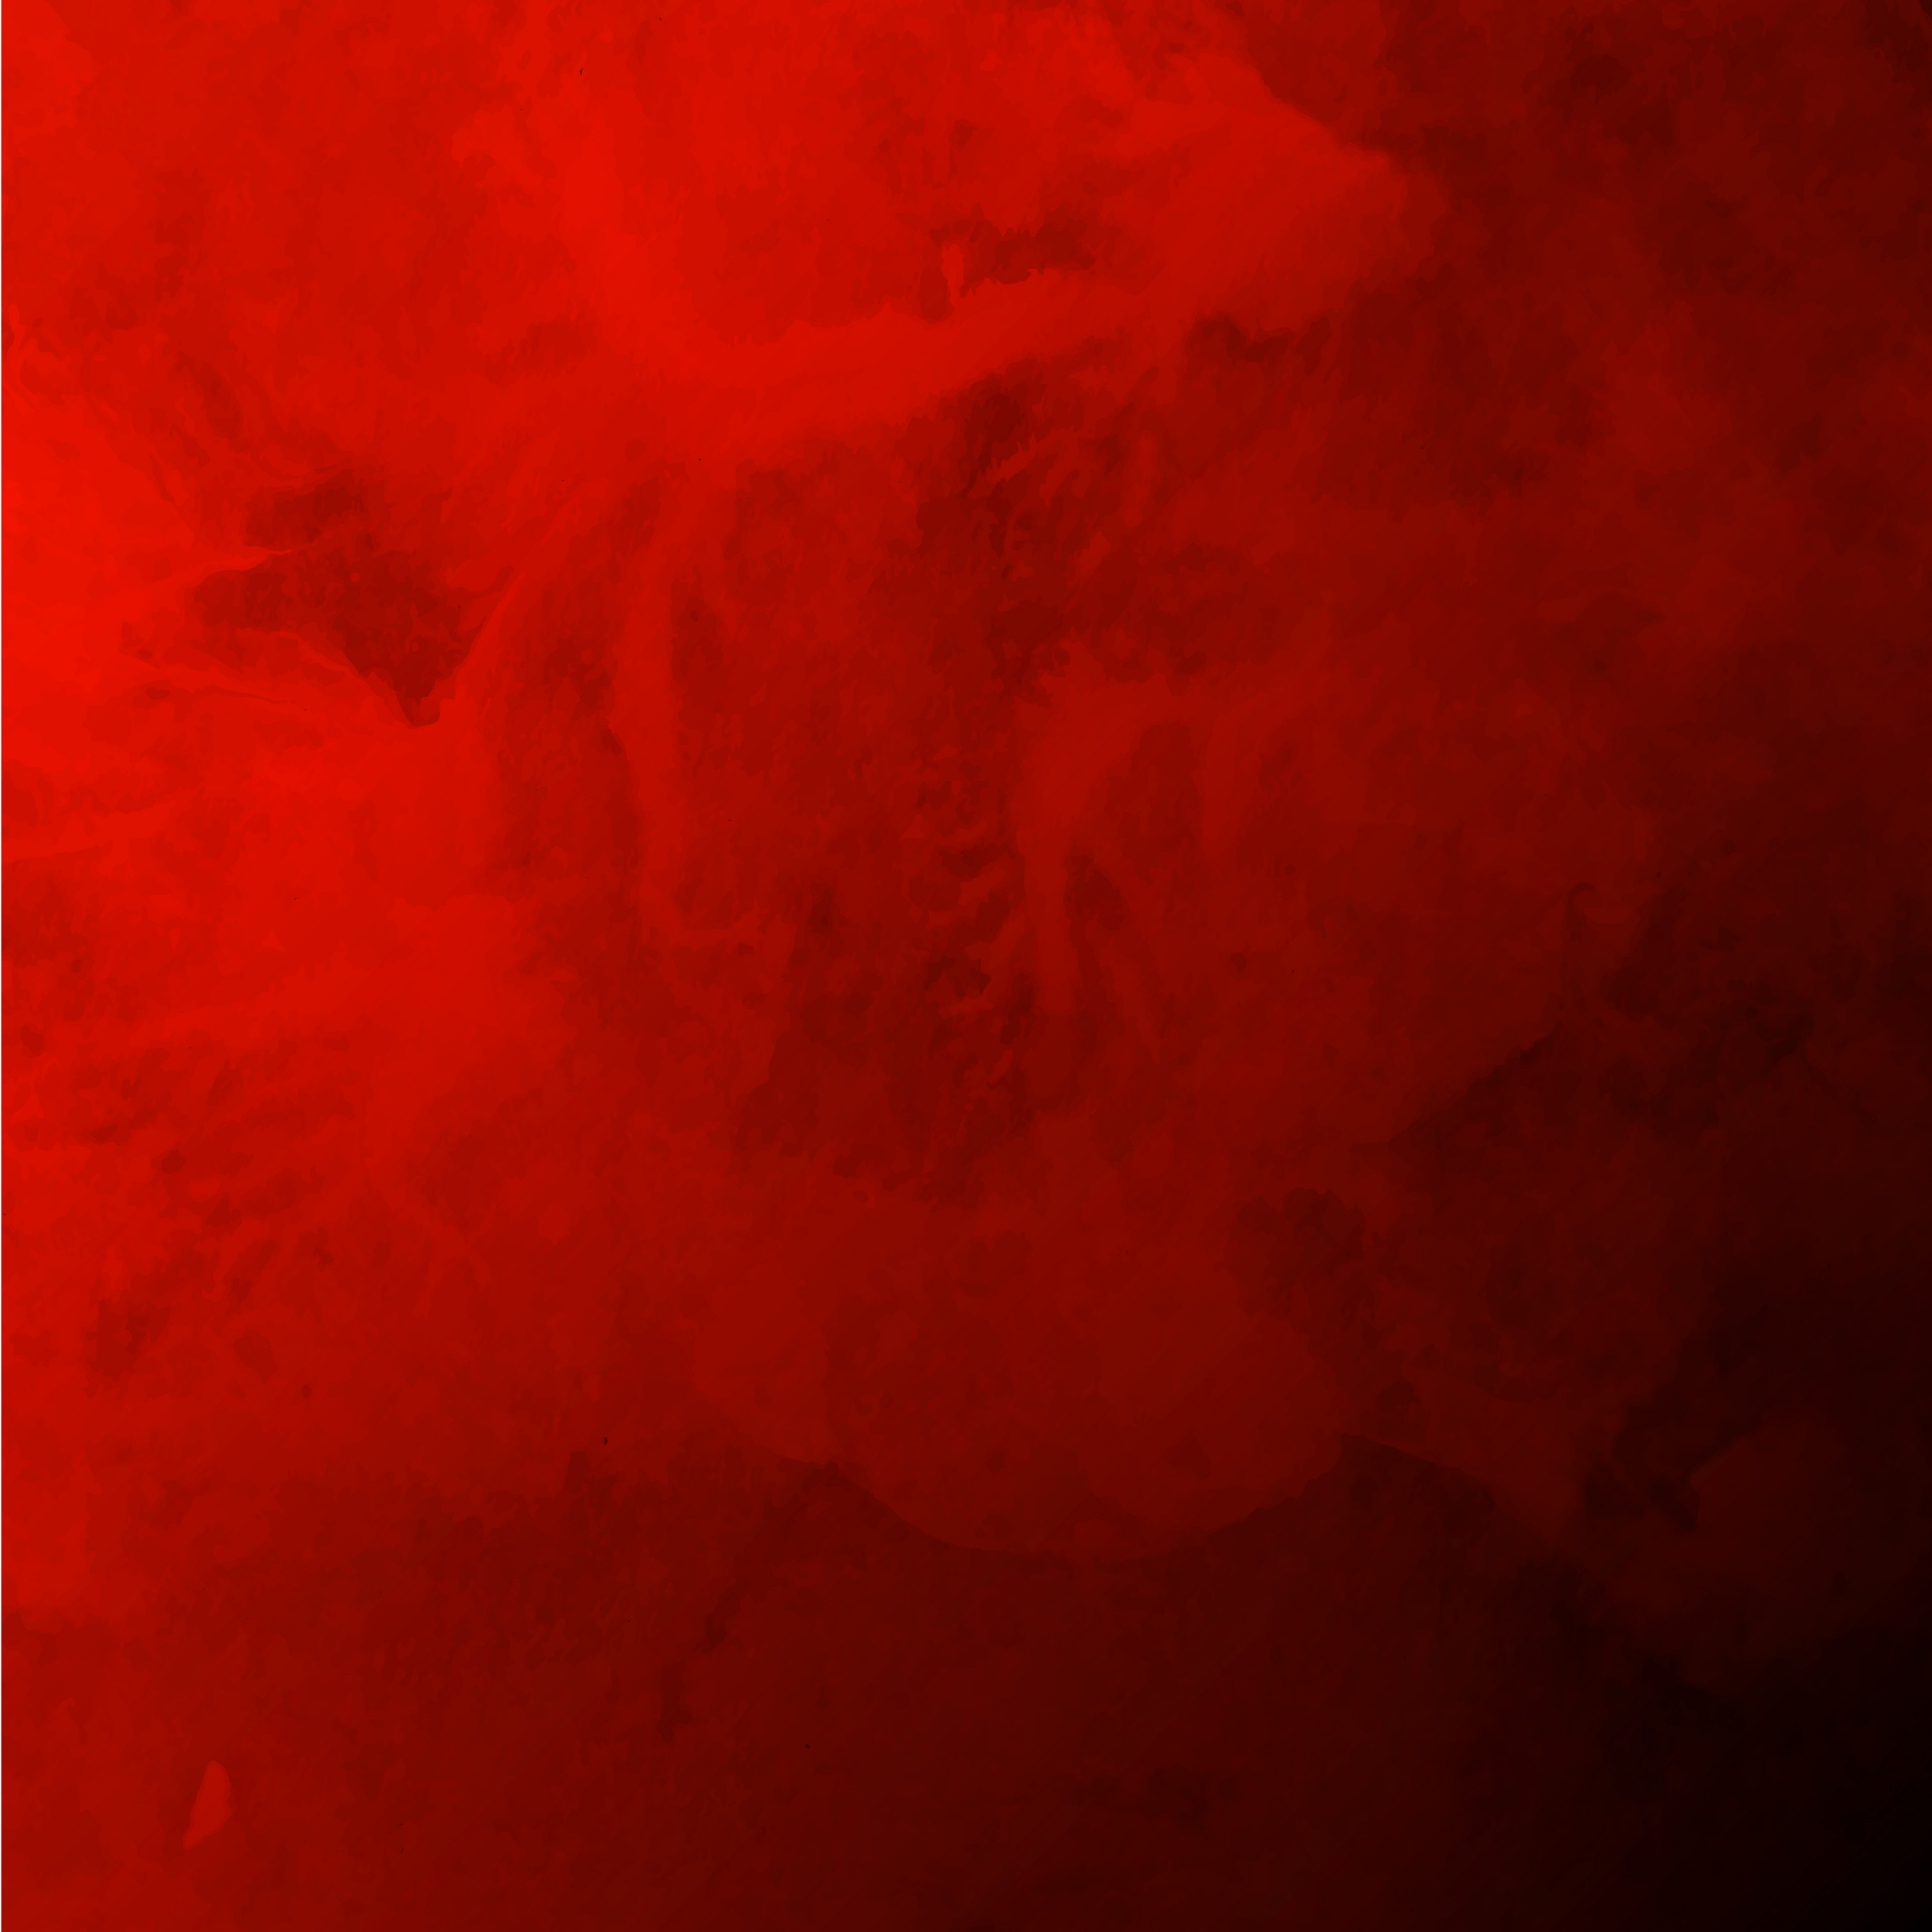 Royal Watercolor Valentine Red Background